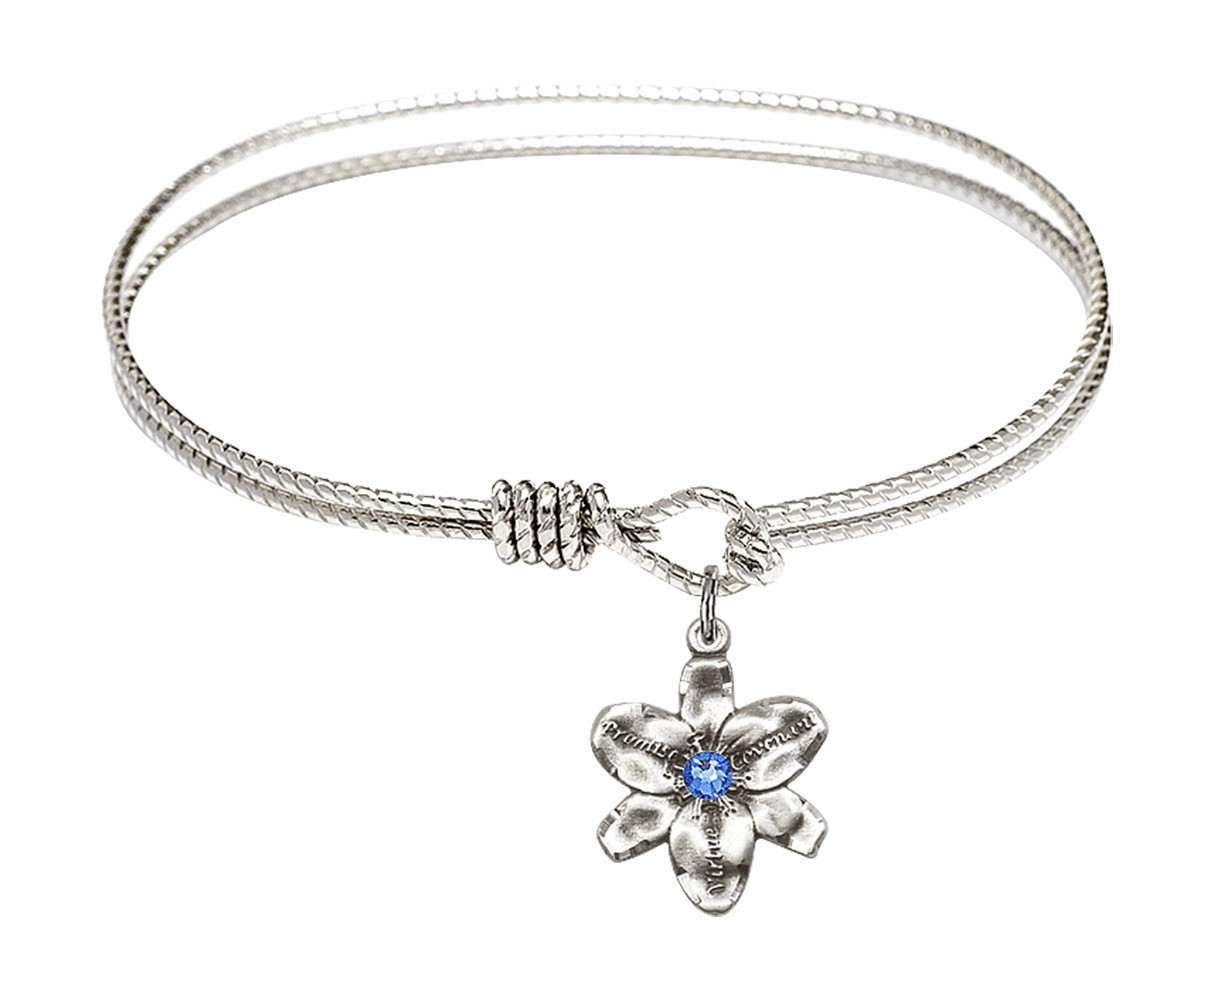 Textured Bangle Bracelet w/Sapphire Flower Chastity Charm by Bliss Mfg